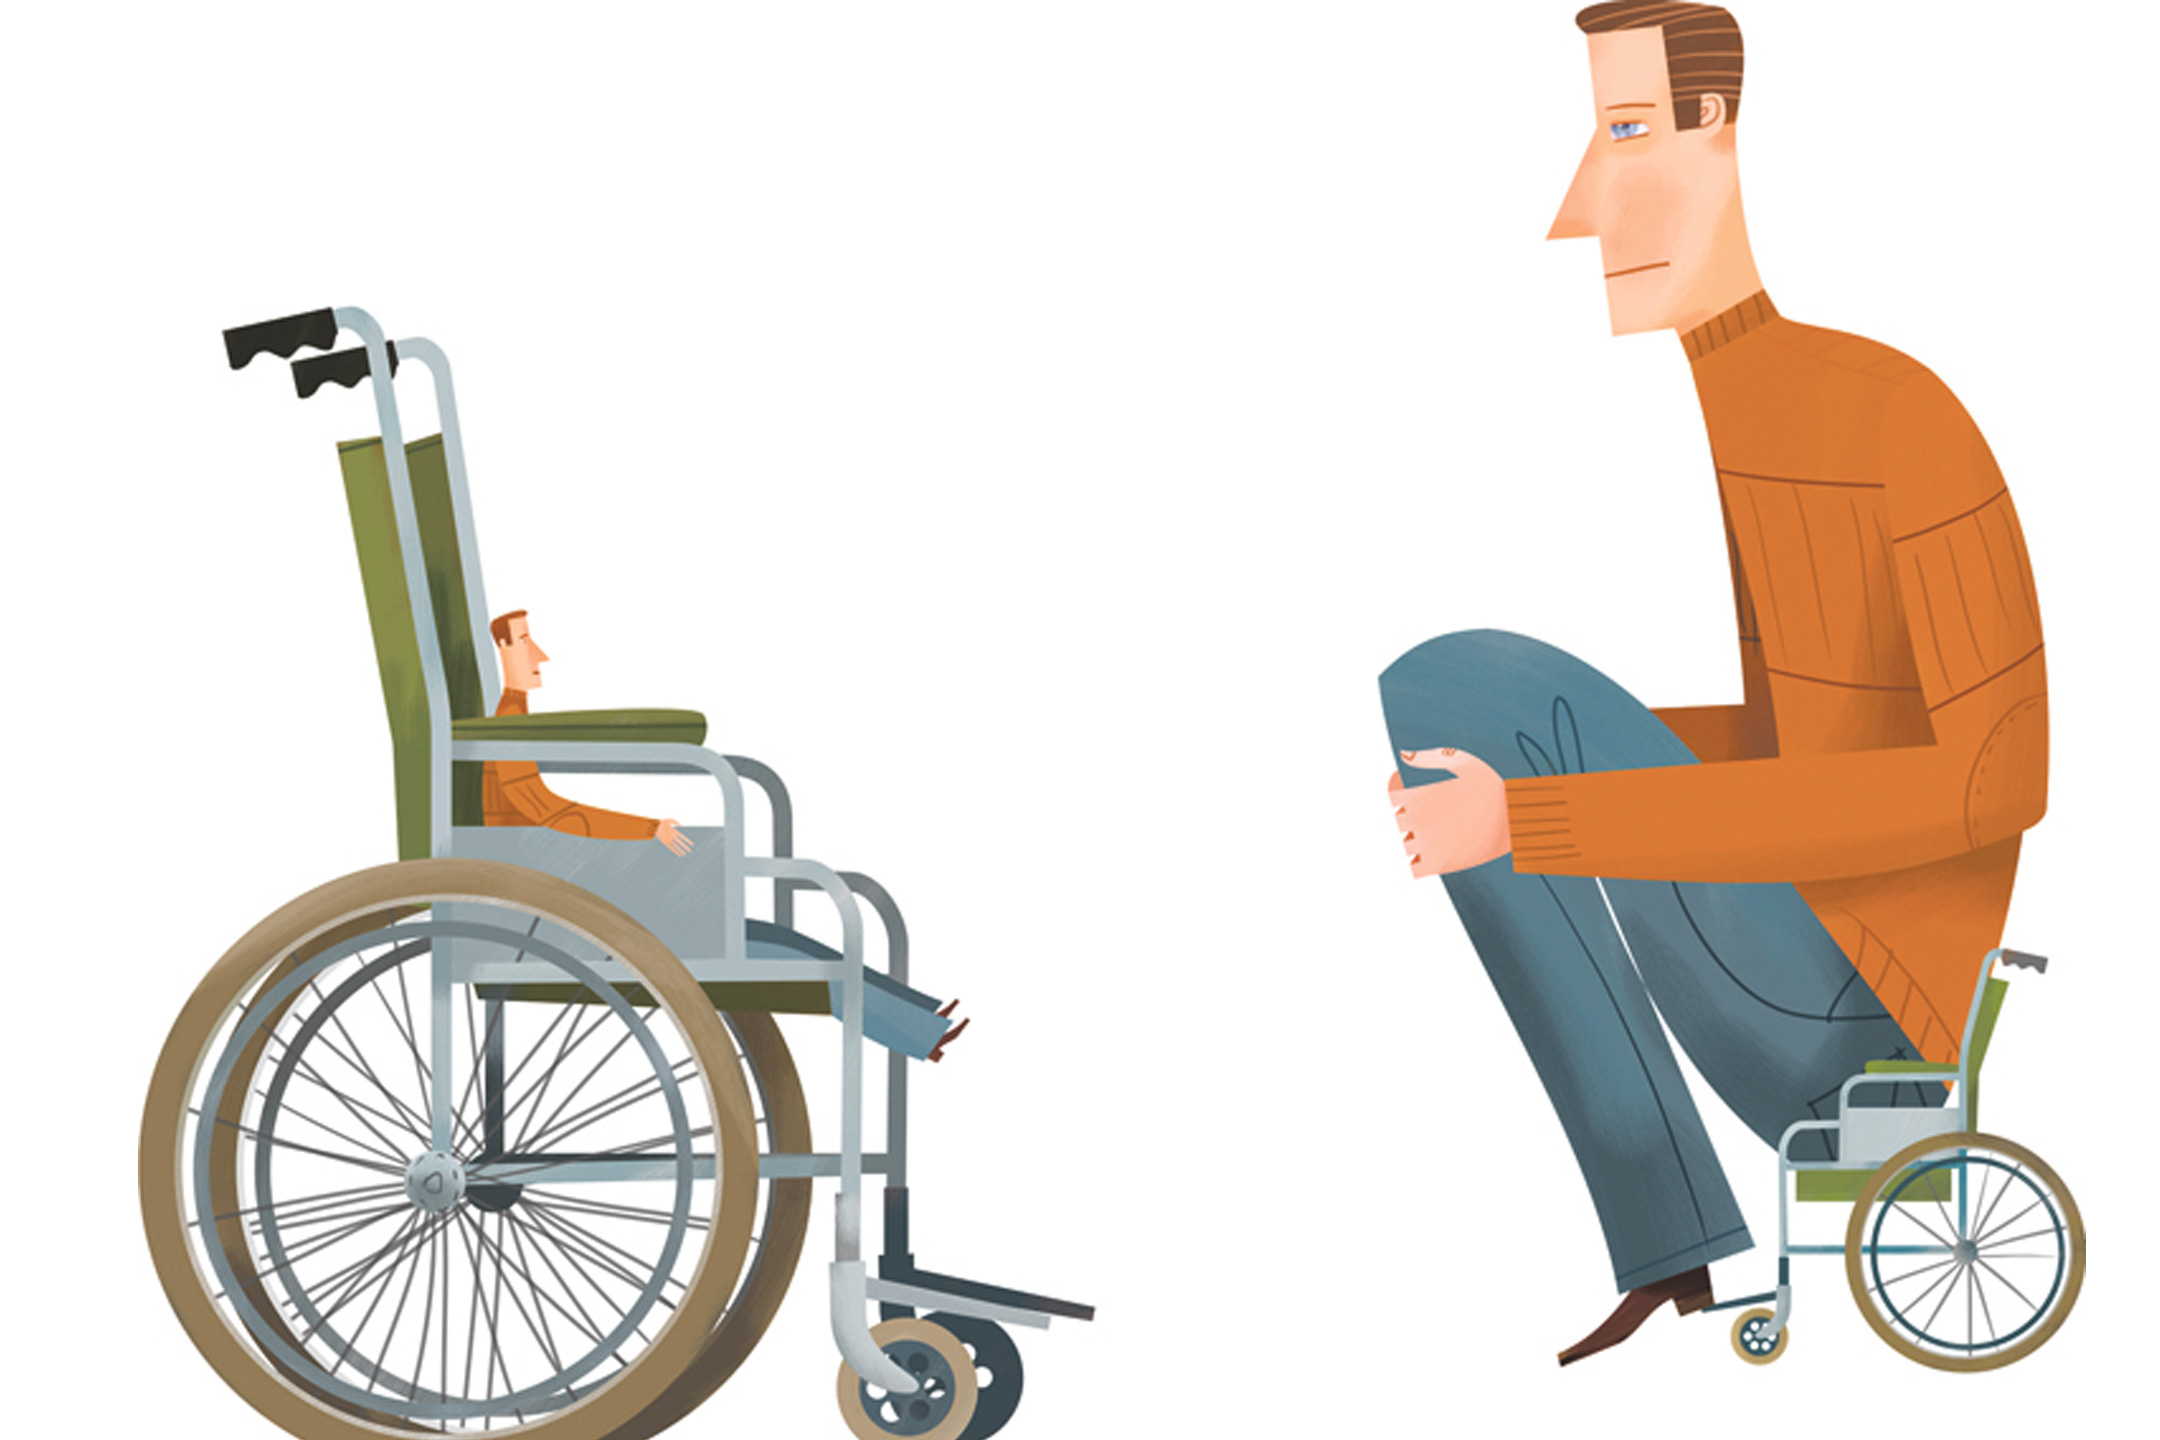 D3-Disability-wheelchairs2160